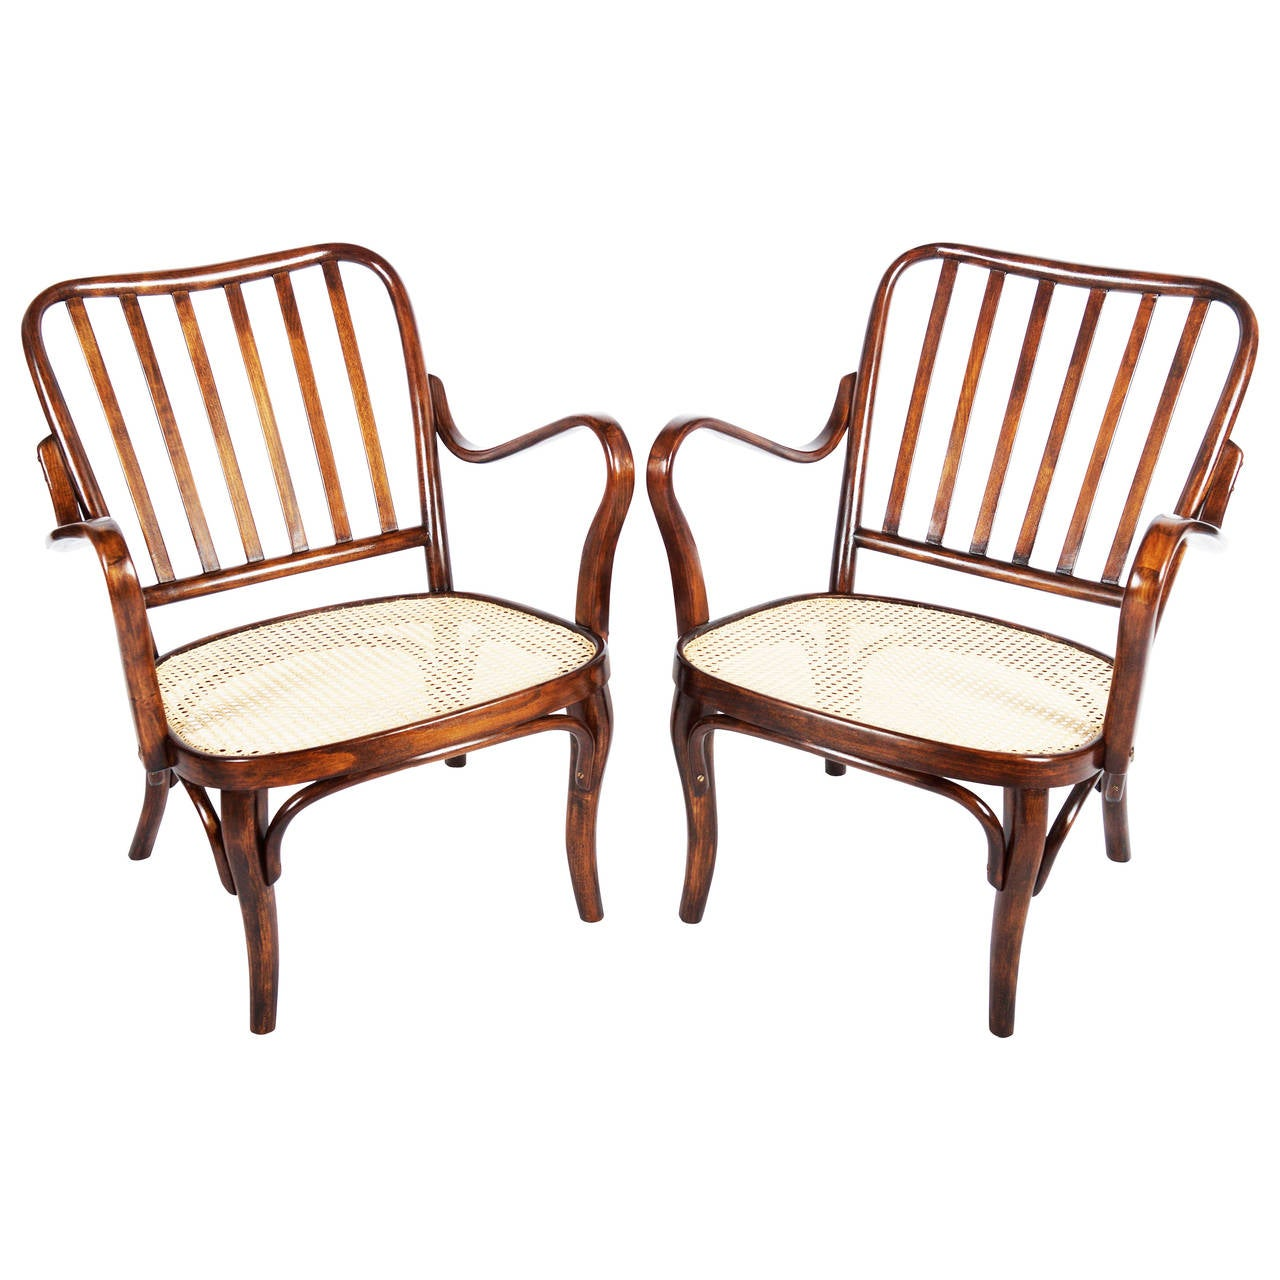 Thonet Armchairs No. 752 by Josef Frank